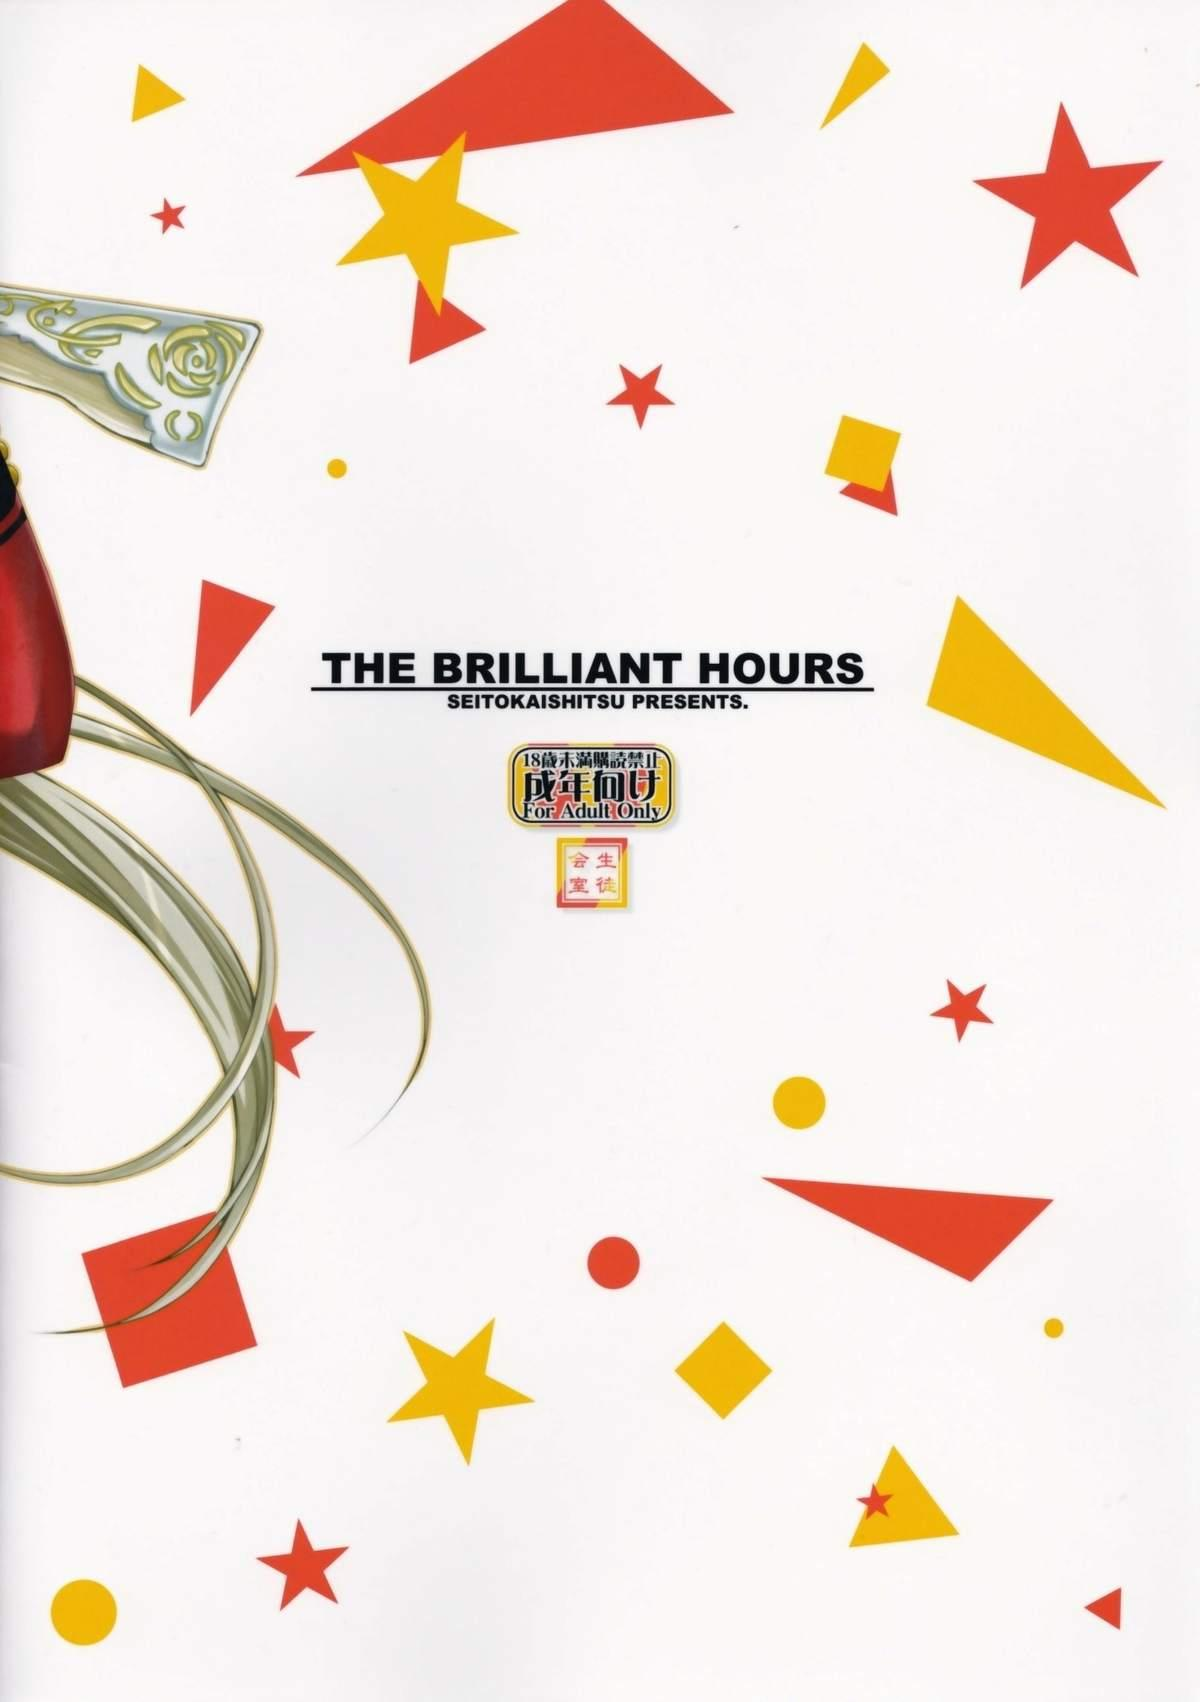 THE BRILLIANT HOURS 29